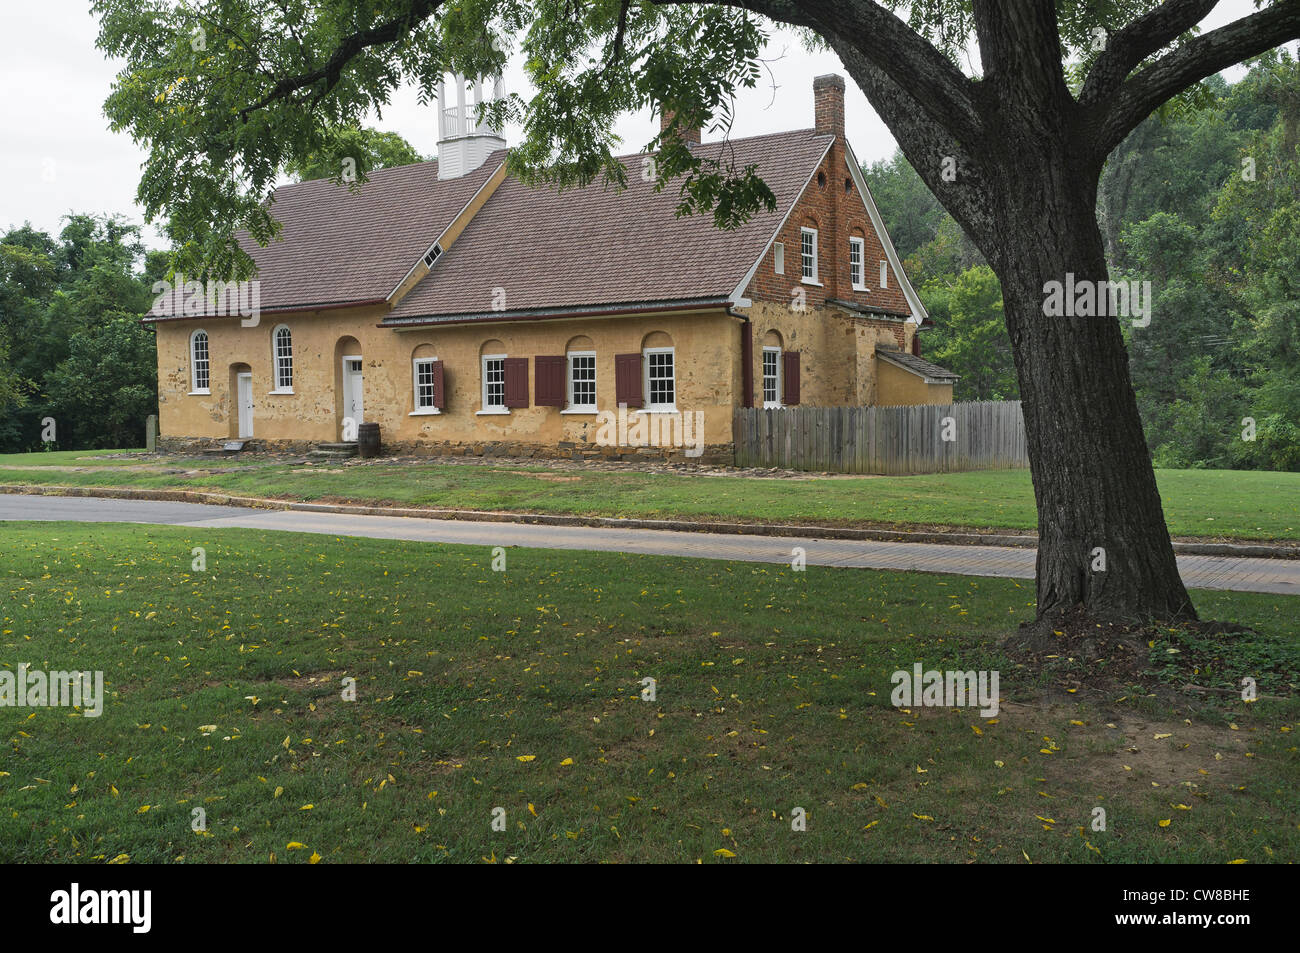 Gemeinhaus building 1788. German colonial church with attached minister's living quarters. Frederic Marshall - Stock Image